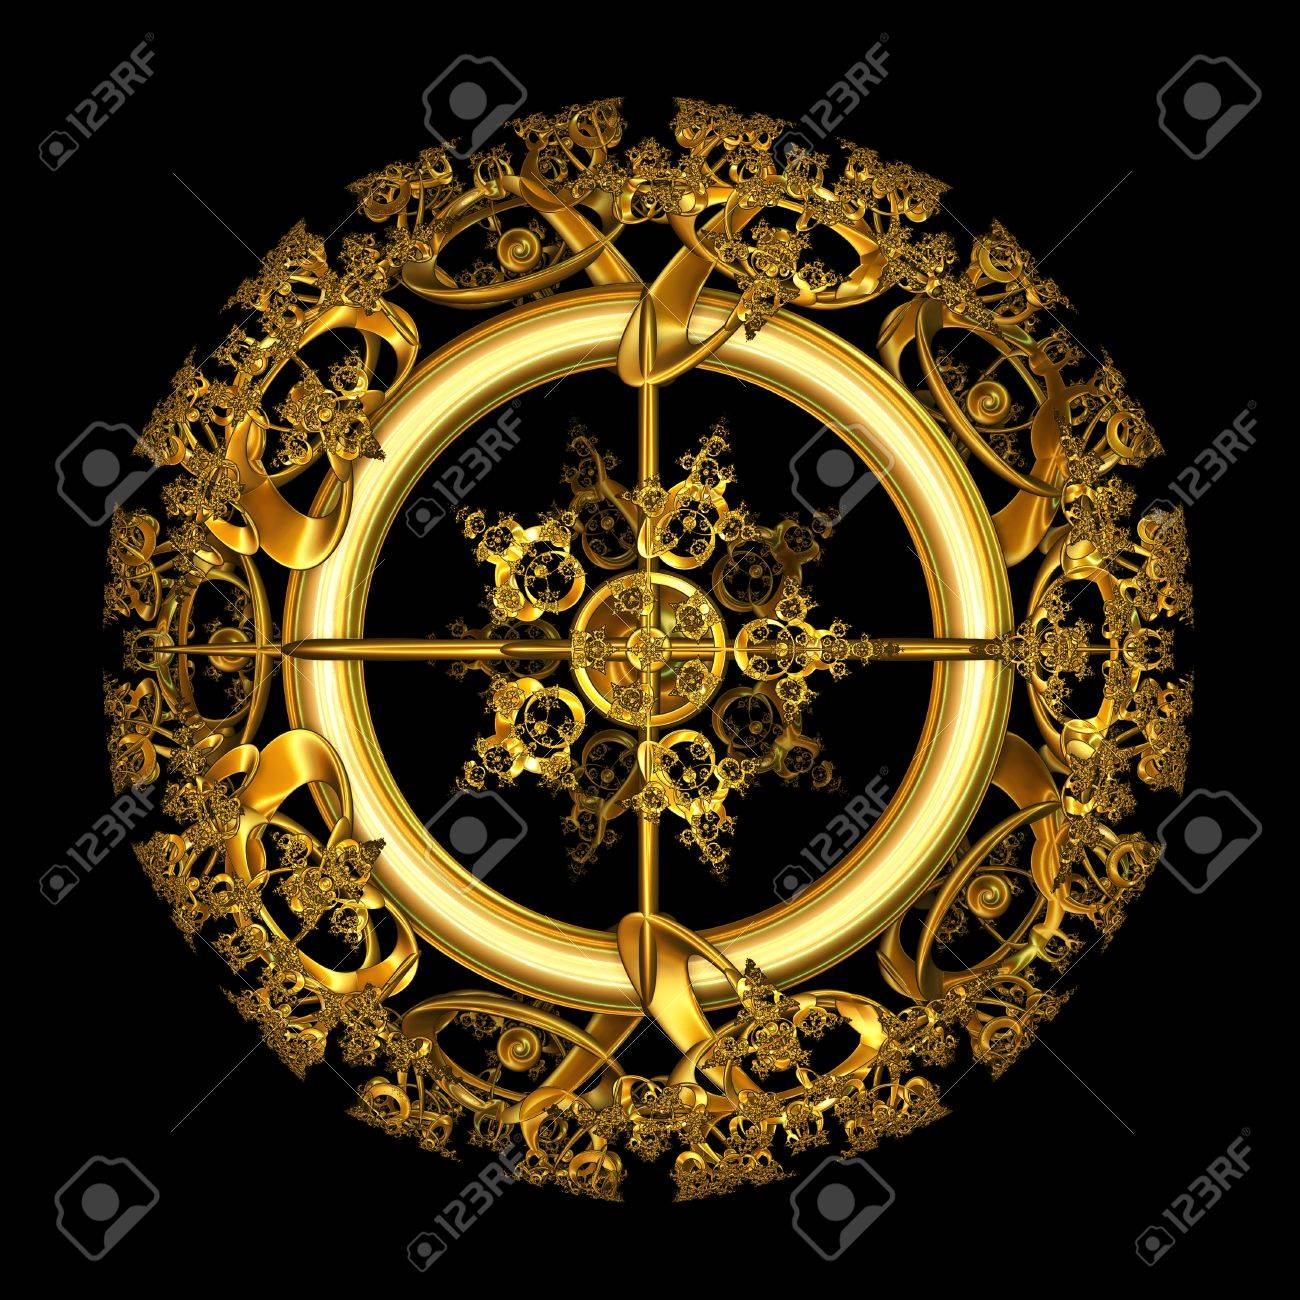 An illustration of an elegant antique gold filigree design in a circular shape isolated over black background. Stock Illustration - 8530193